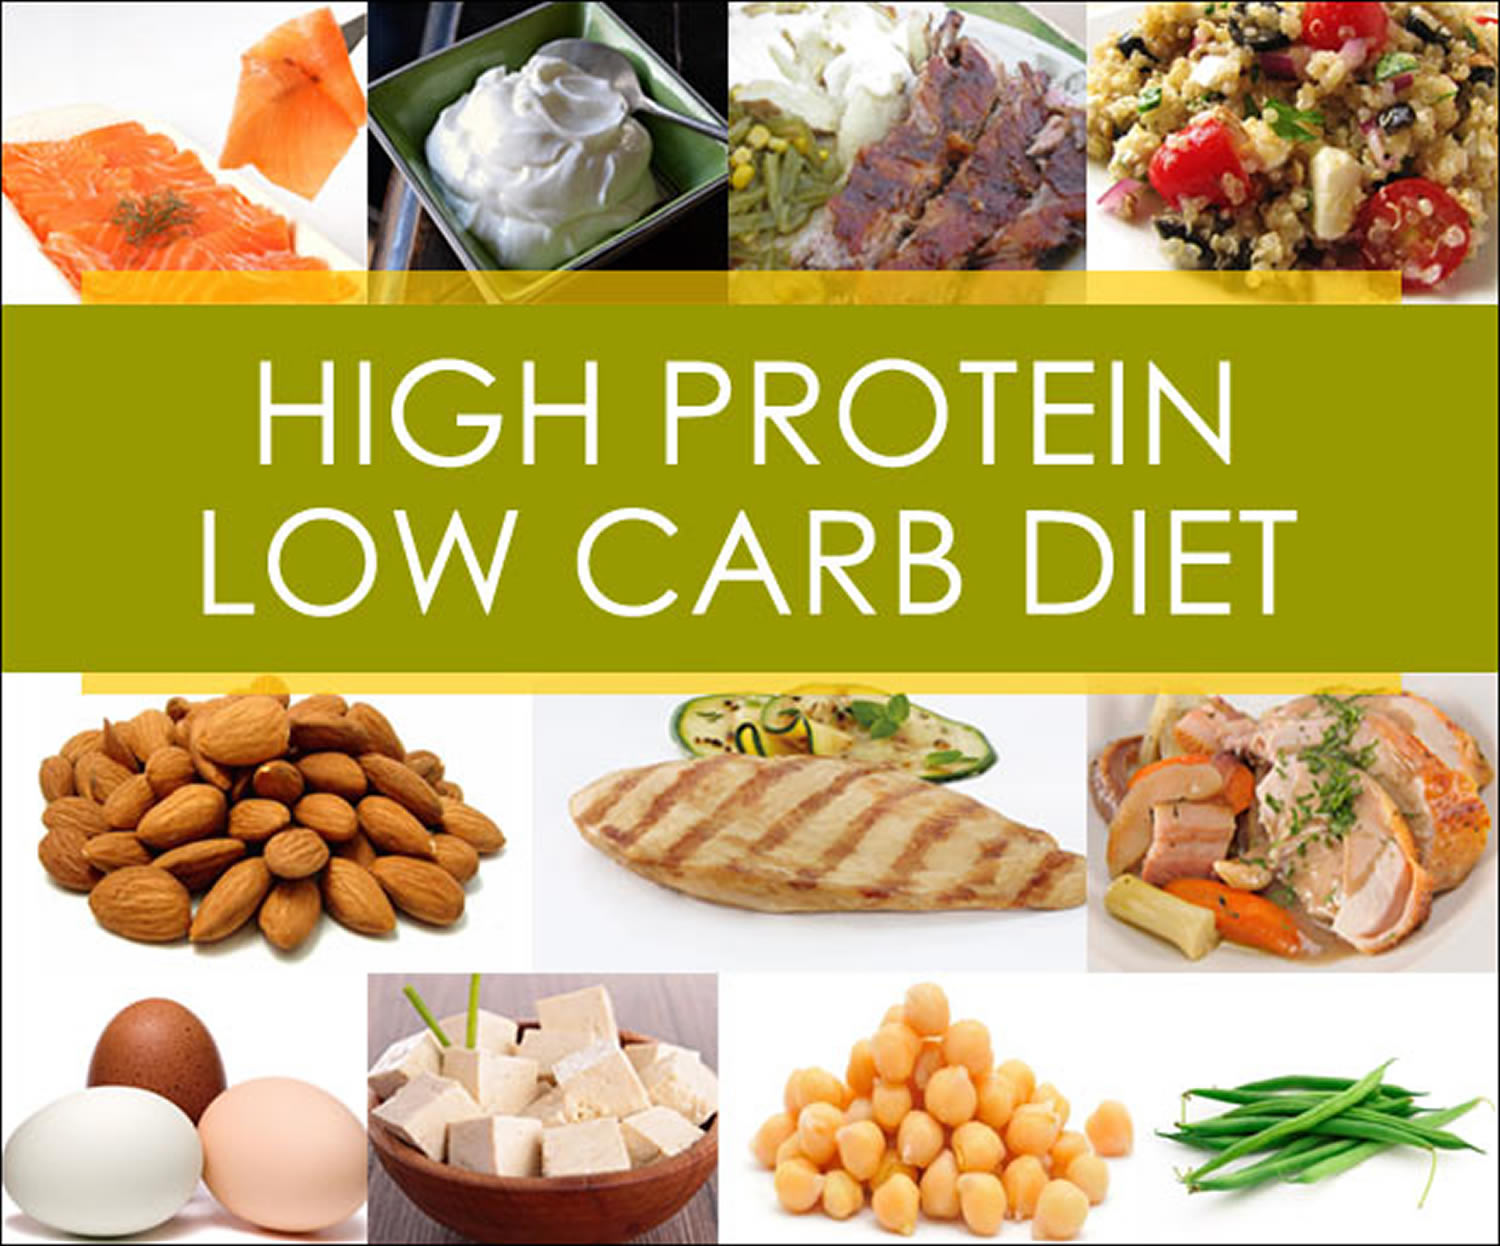 High Protein Low Carb Diet for Weight Loss - What Are The ...